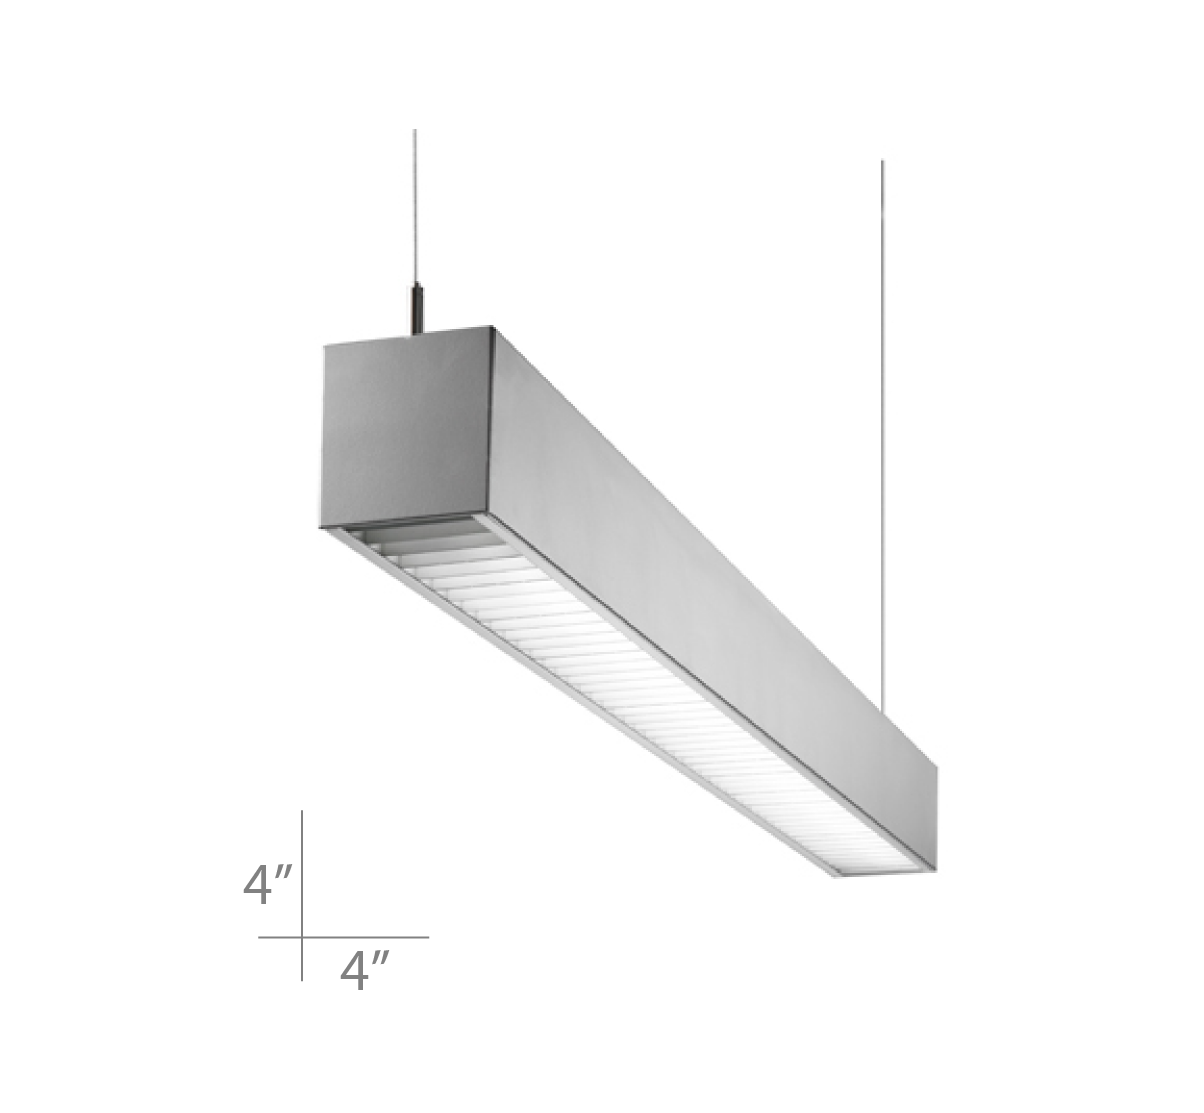 Alcon Lighting Colt 12220 Linear Led Pendant Light Fixture With Parabolic Louver Direct